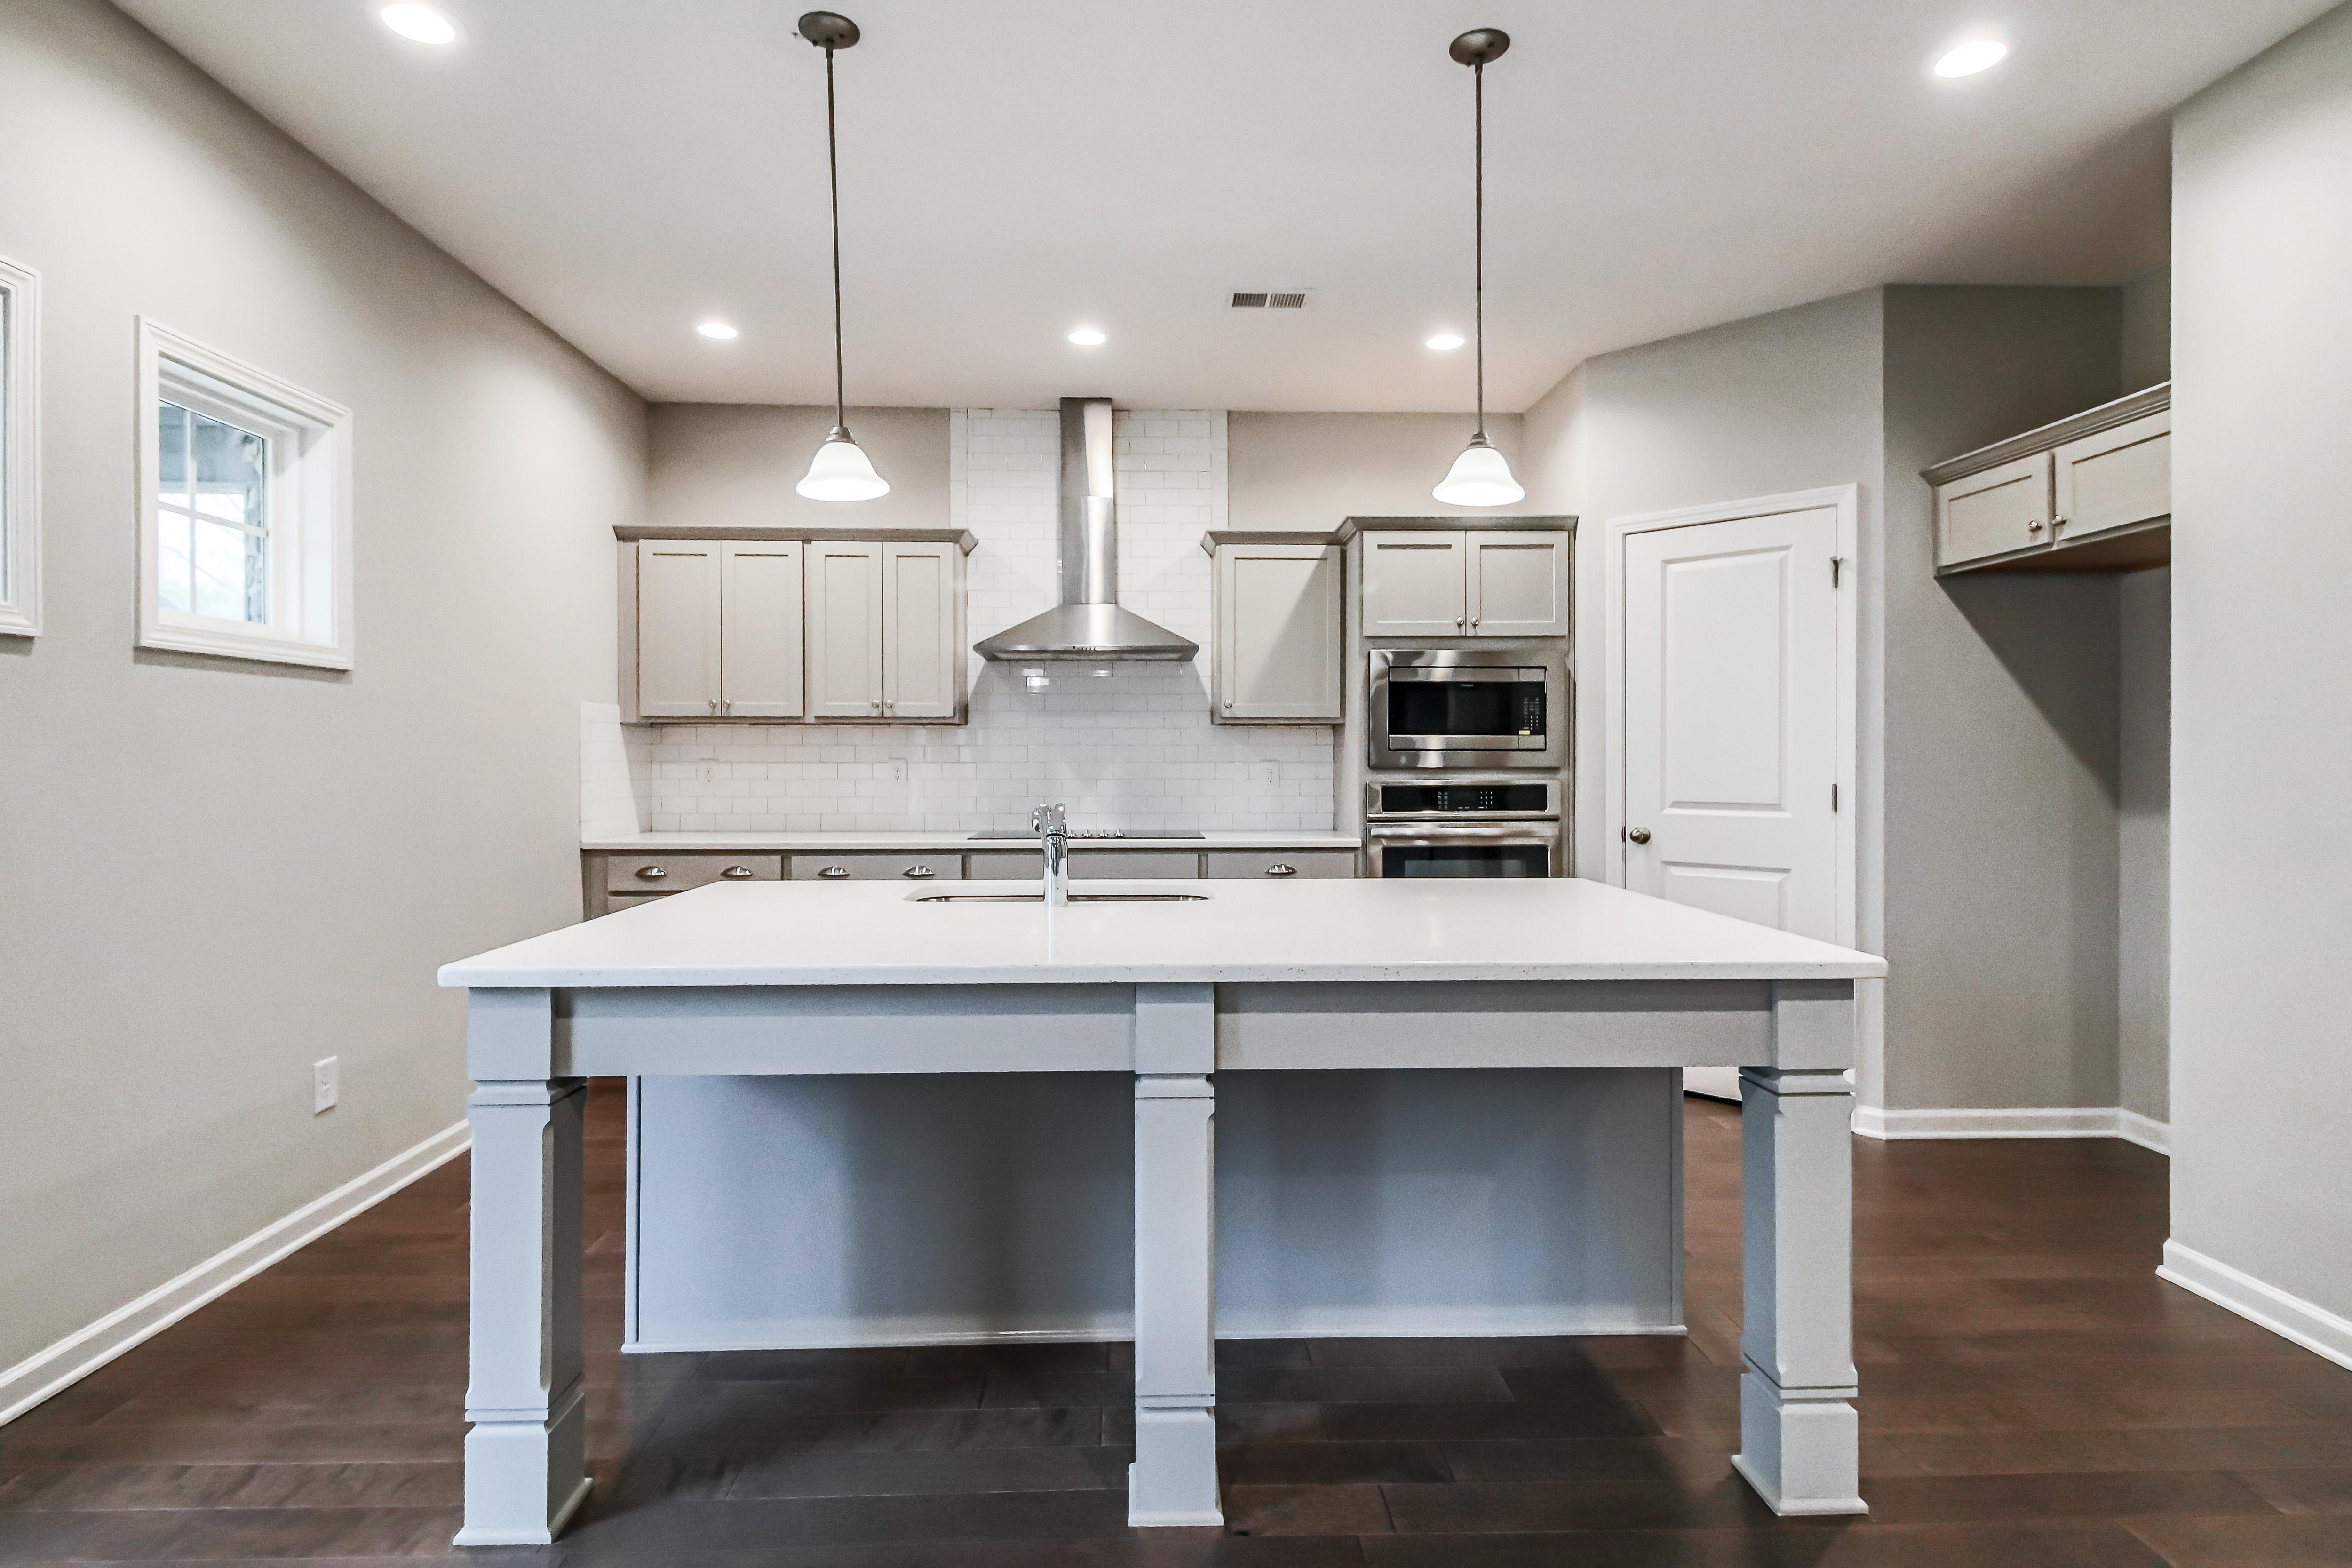 Kitchen featured in the Cypress By Hughston Homes in Columbus, GA